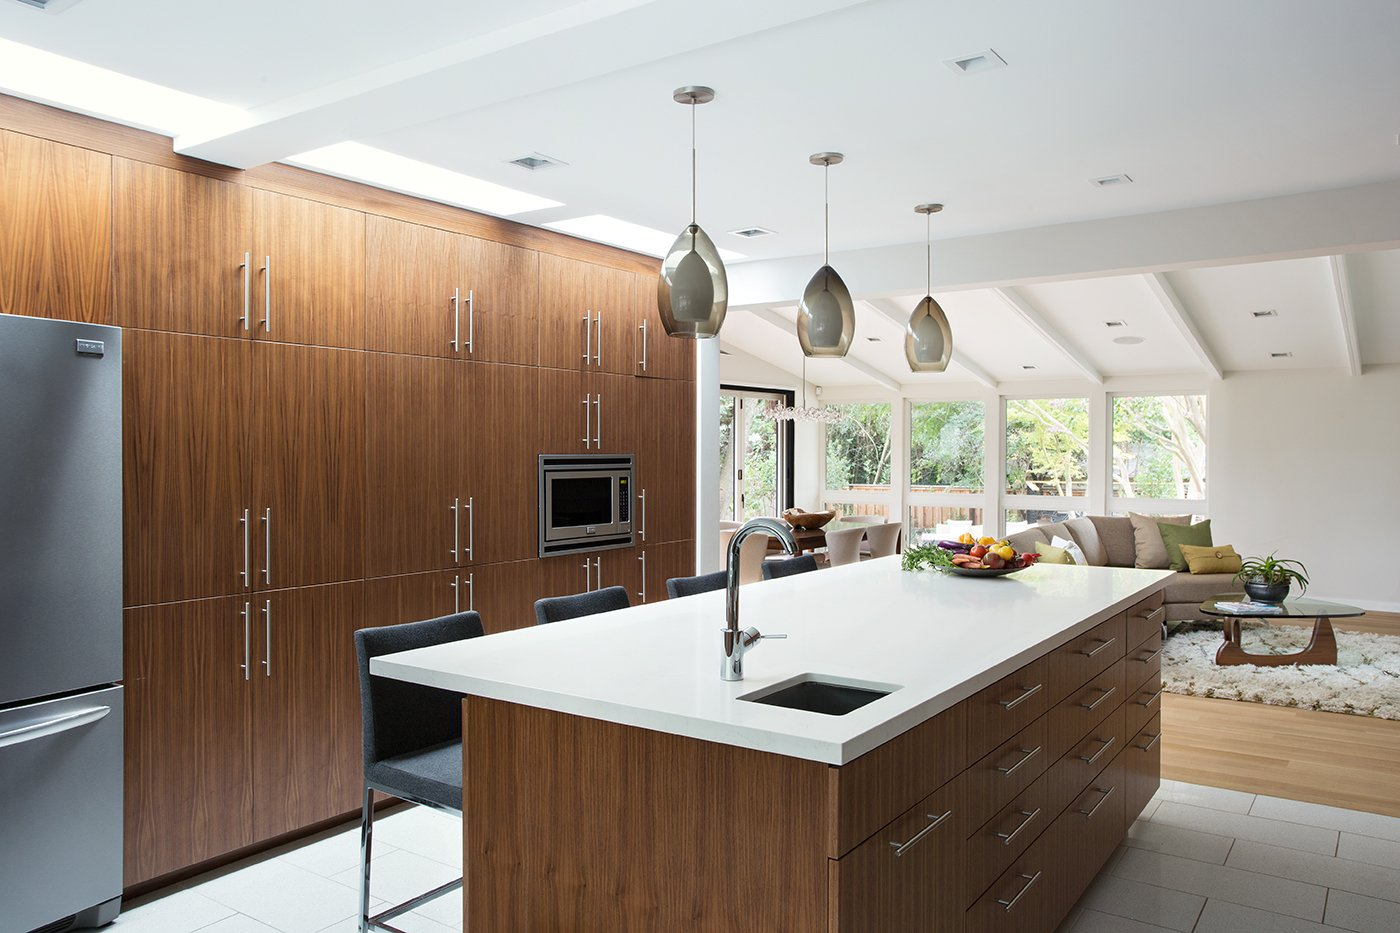 """Kitchen, Wood Cabinet, Refrigerator, Wall Oven, and Pendant Lighting Lafayette Mid Century Modern Remodel   The owners of this property had been away from the Bay Area for many years, and looked forward to returning to an elegant mid-century modern house. The one they bought was anything but that. Faced with a """"remuddled"""" kitchen from one decade, a haphazard bedroom / family room addition from another, and an otherwise disjointed and generally run-down mid-century modern house, the owners asked Klopf Architecture and Envision Landscape Studio to re-imagine this house and property as a unified, flowing, sophisticated, warm, modern indoor / outdoor living space for a family of five.   Opening up the spaces internally and from inside to out was the first order of business. The formerly disjointed eat-in kitchen with 7 foot high ceilings were opened up to the living room, re-oriented, and replaced with a spacious cook's kitchen complete with a row of skylights bringing light into the space. Adjacent the living room wall was completely opened up with La Cantina folding door system, connecting the interior living space to a new wood deck that acts as a continuation of the wood floor. People can flow from kitchen to the living / dining room and the deck seamlessly, making the main entertainment space feel at once unified and complete, and at the same time open and limitless.   Klopf opened up the bedroom with a large sliding panel, and turned what was once a large walk-in closet into an office area, again with a large sliding panel. The master bathroom has high windows all along one wall to bring in light, and a large wet room area for the shower and tub. The dark, solid roof structure over the patio was replaced with an open trellis that allows plenty of light, brightening the new deck area as well as the interior of the house. Located in Lafayette, CA this remodeled single-family house is 3,363 square foot, 4 bedroom, and 3.5 bathroom.   Klopf Architecture"""